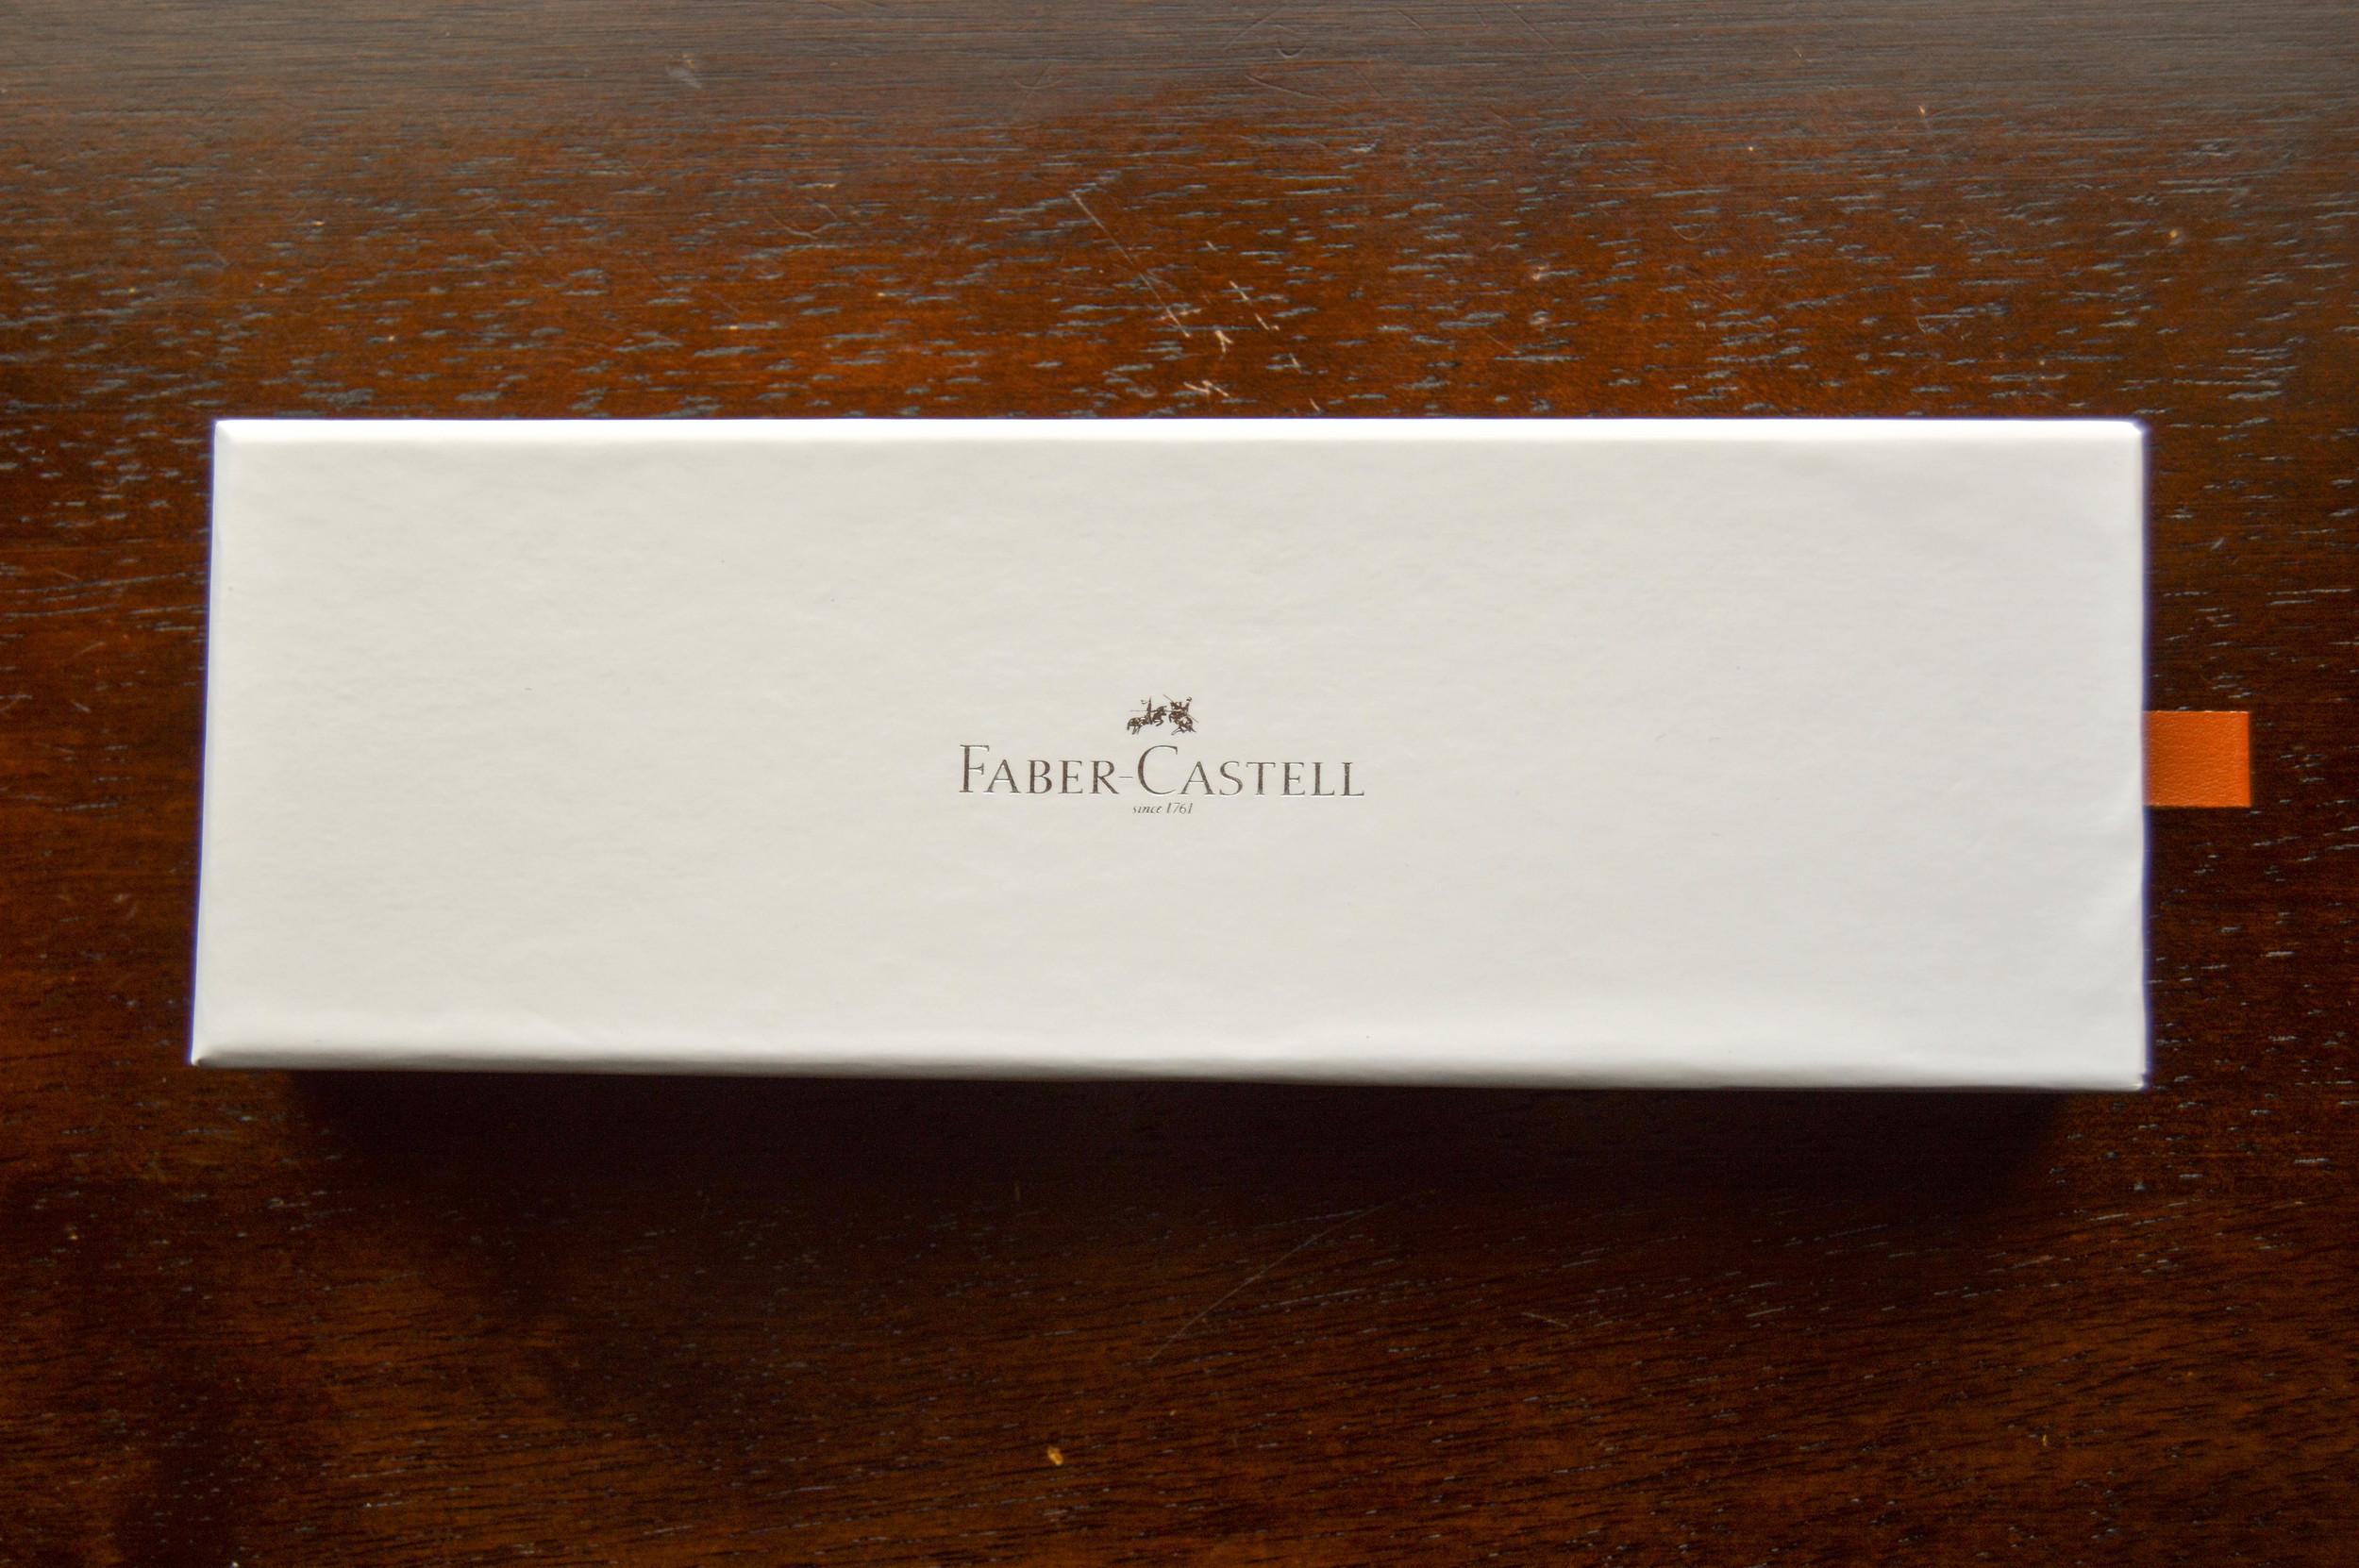 Top of the box with Faber-Castell logo